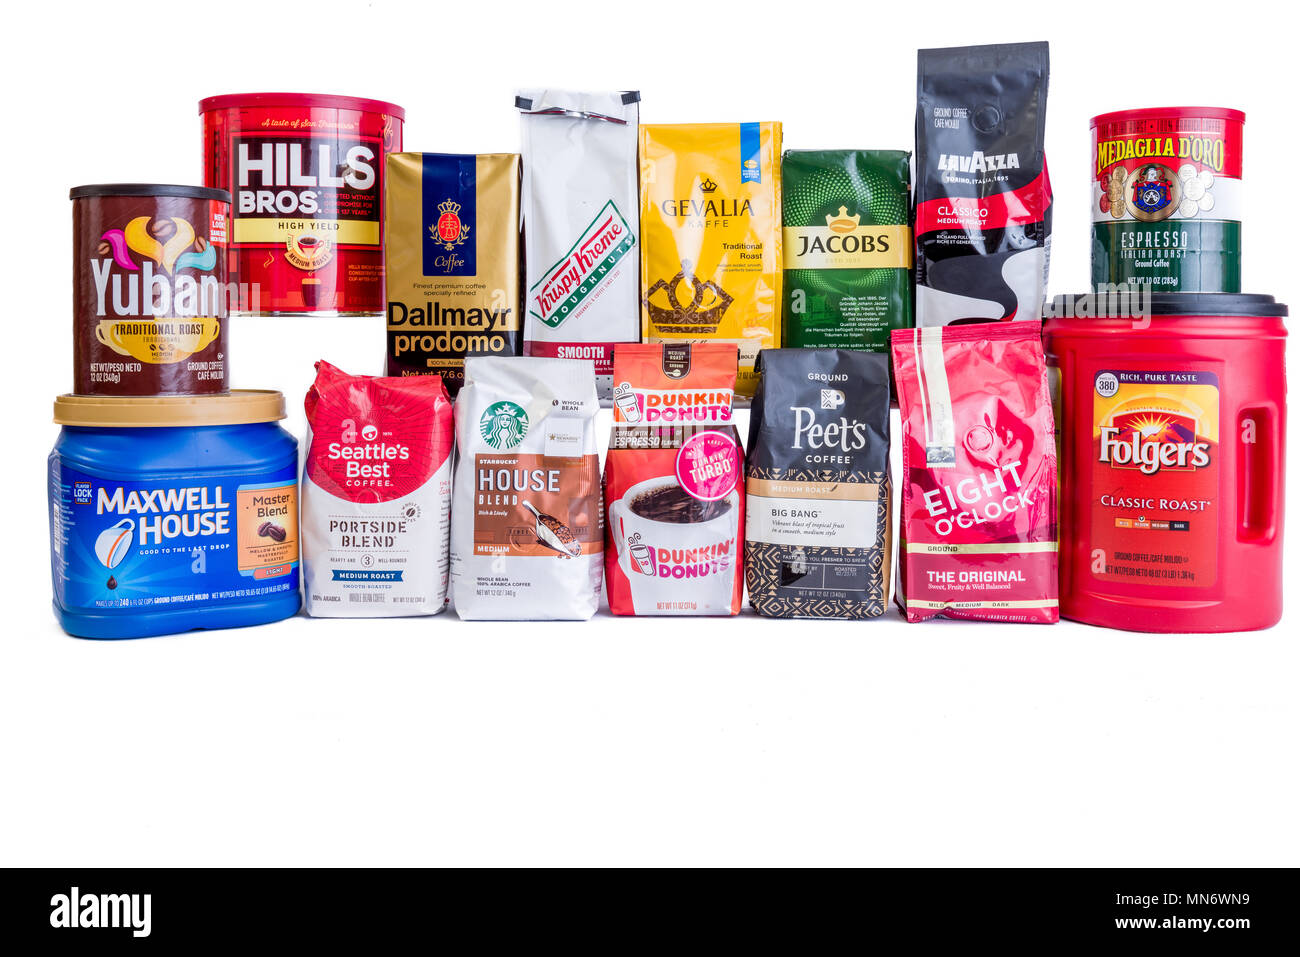 Coffee Brands High Resolution Stock Photography And Images Alamy